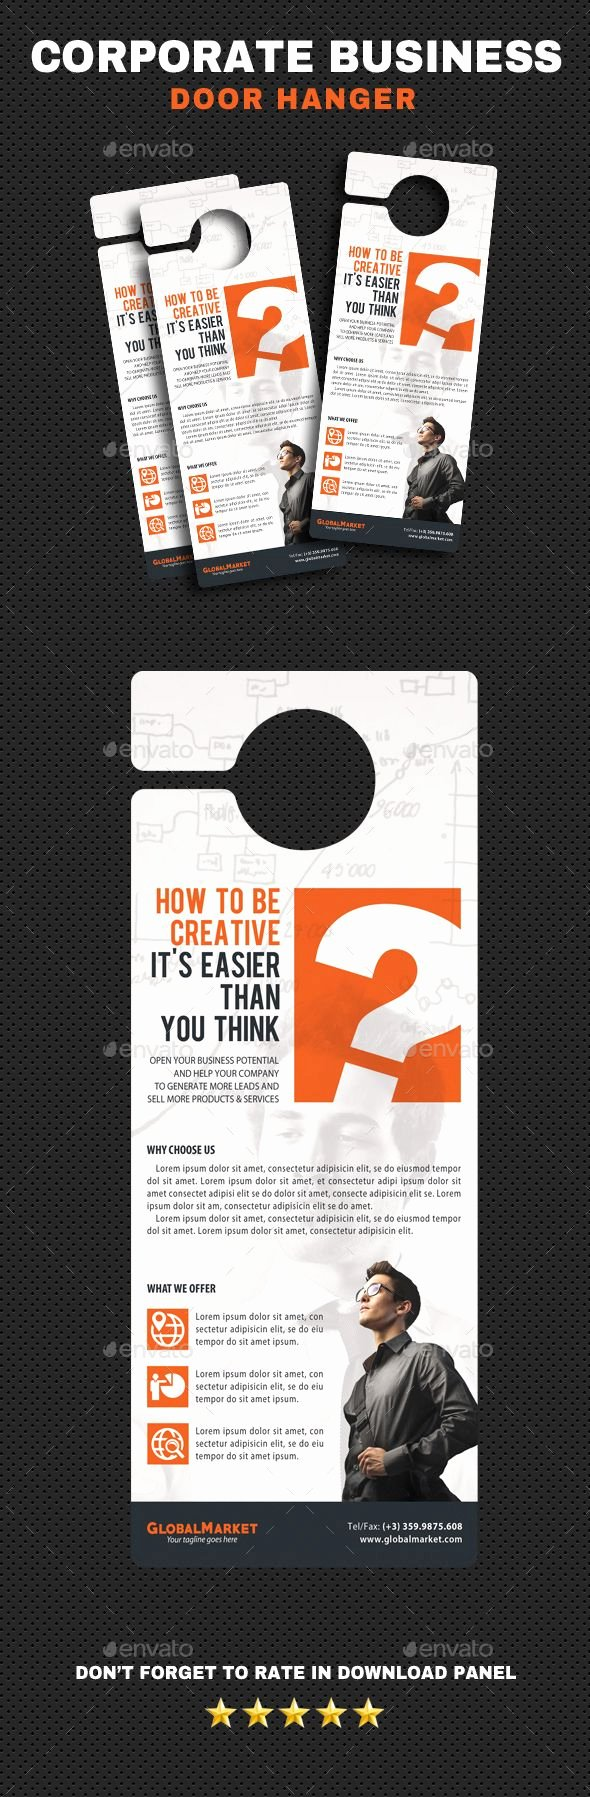 Door Hanger Template Psd Awesome Best 25 Door Hanger Template Ideas On Pinterest